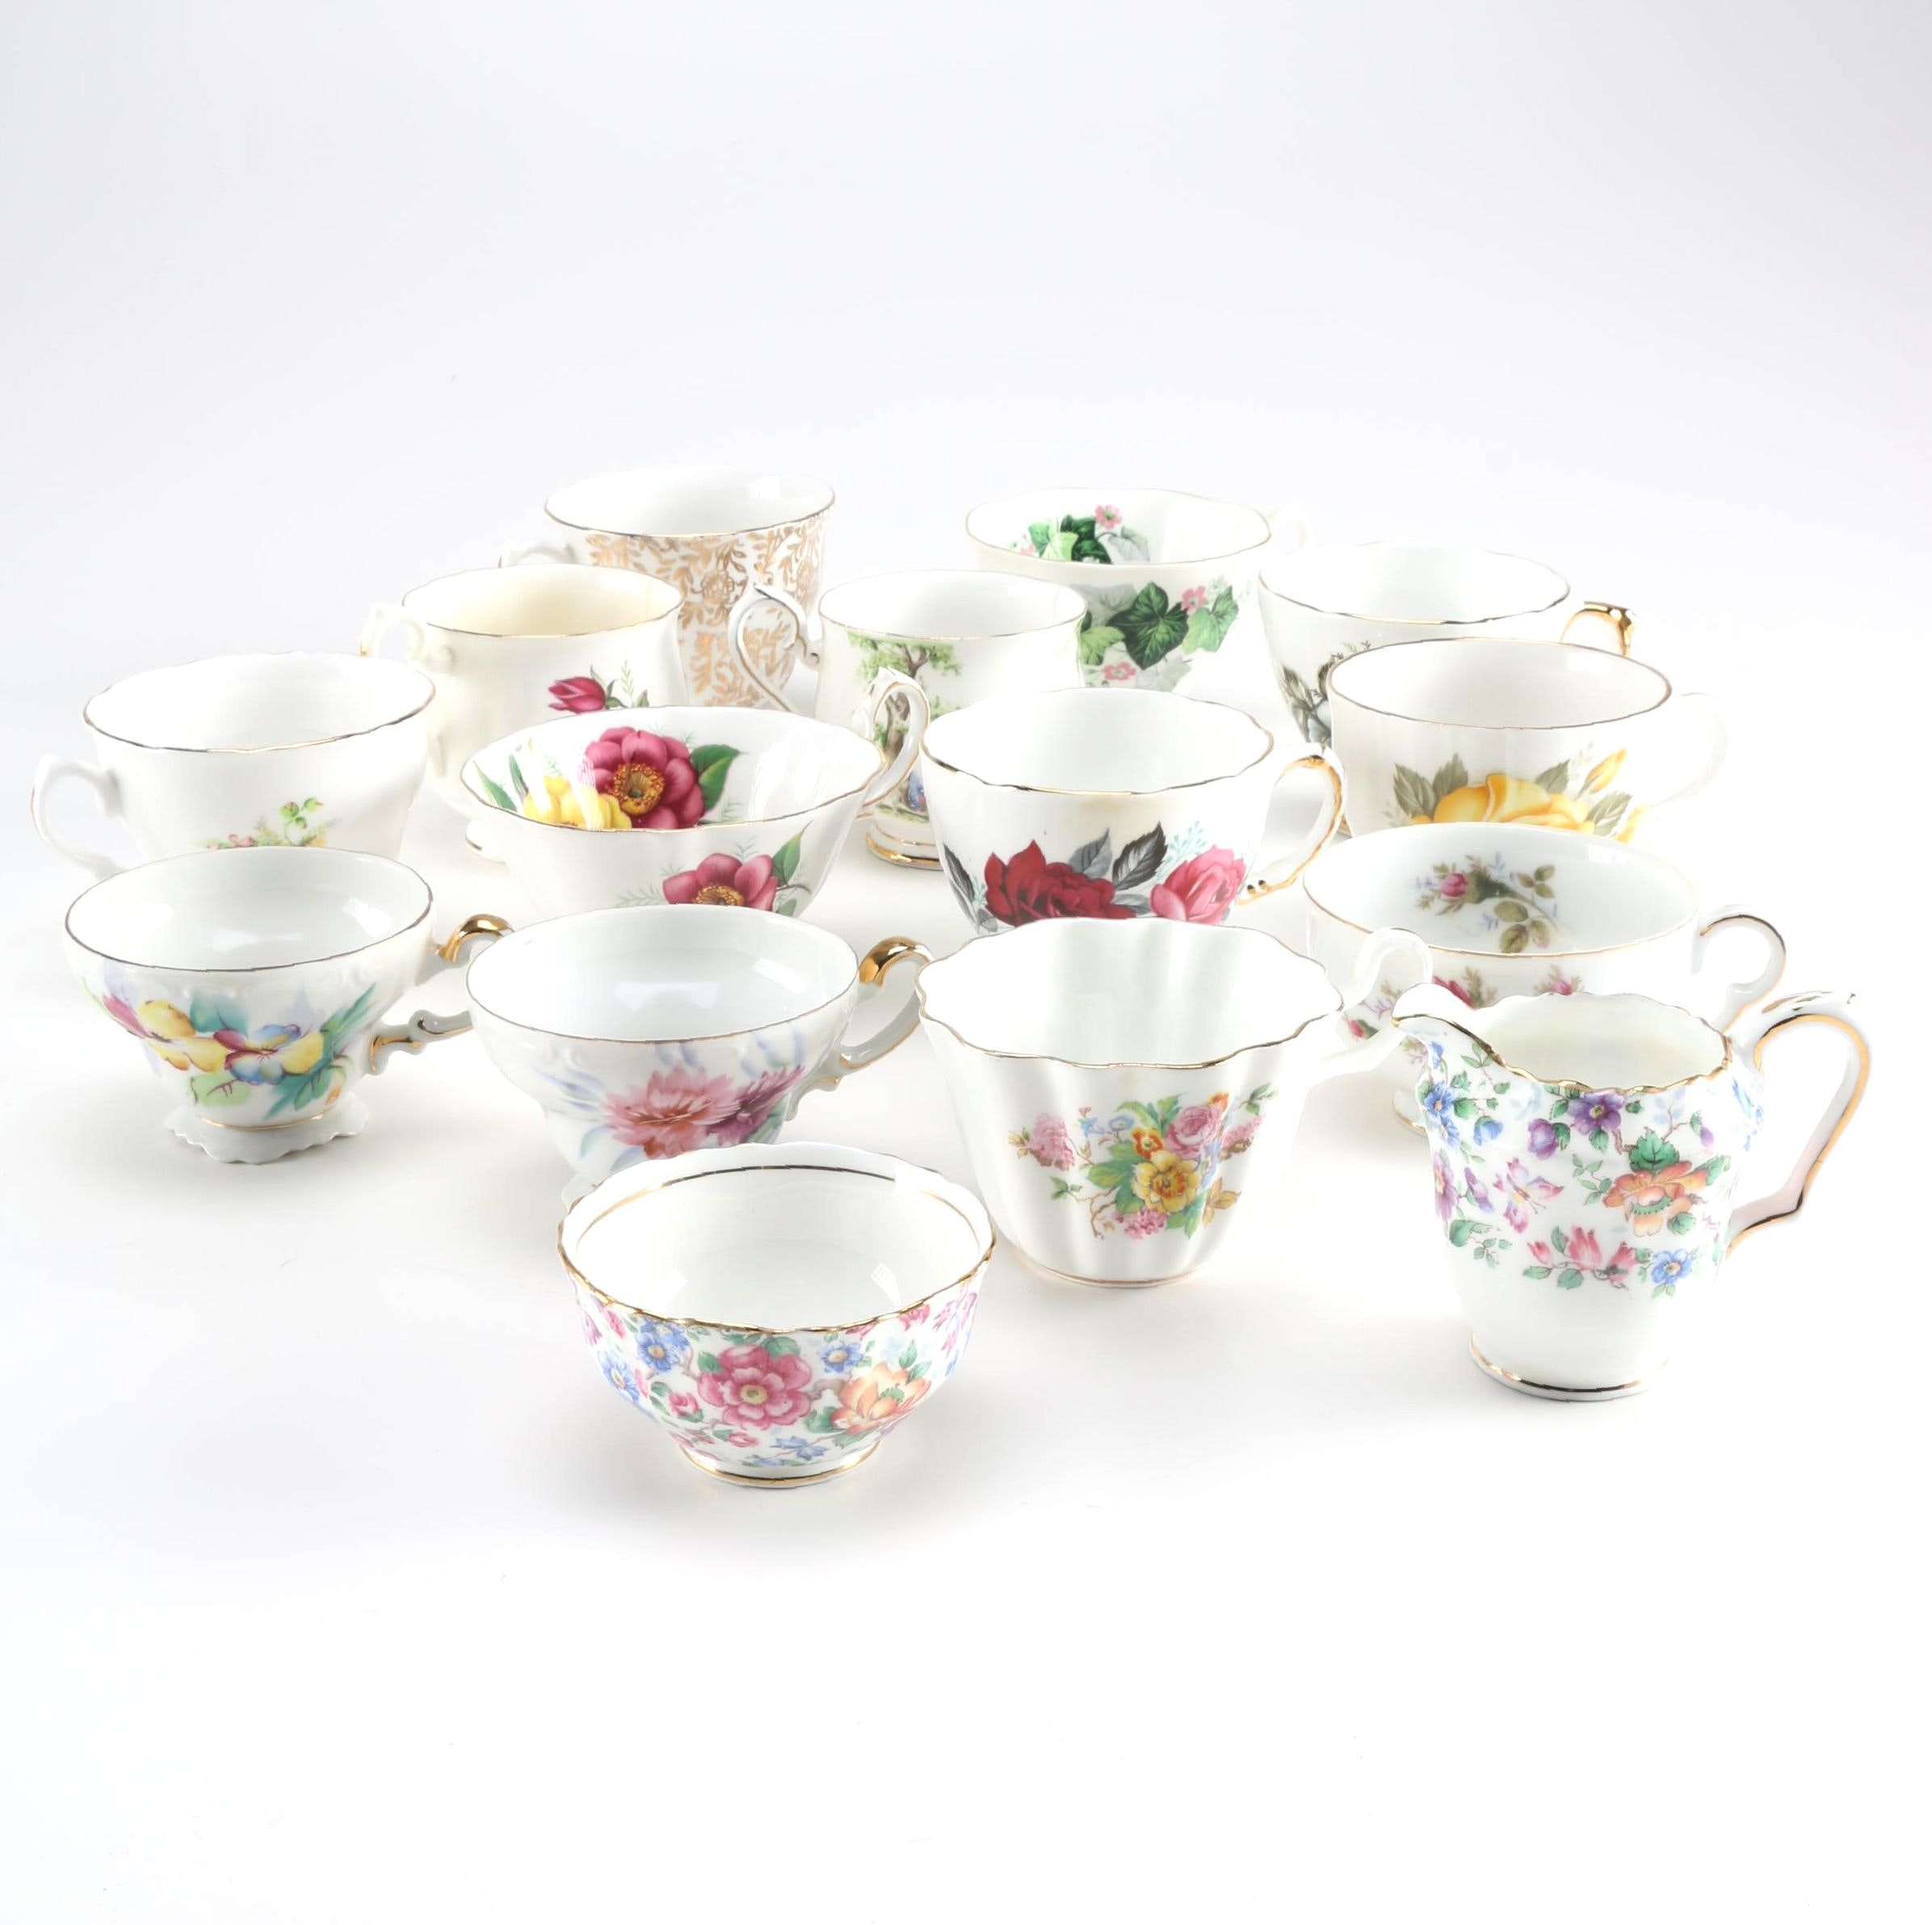 Assortment of China Teacups, Sugar Bowl and Creamer